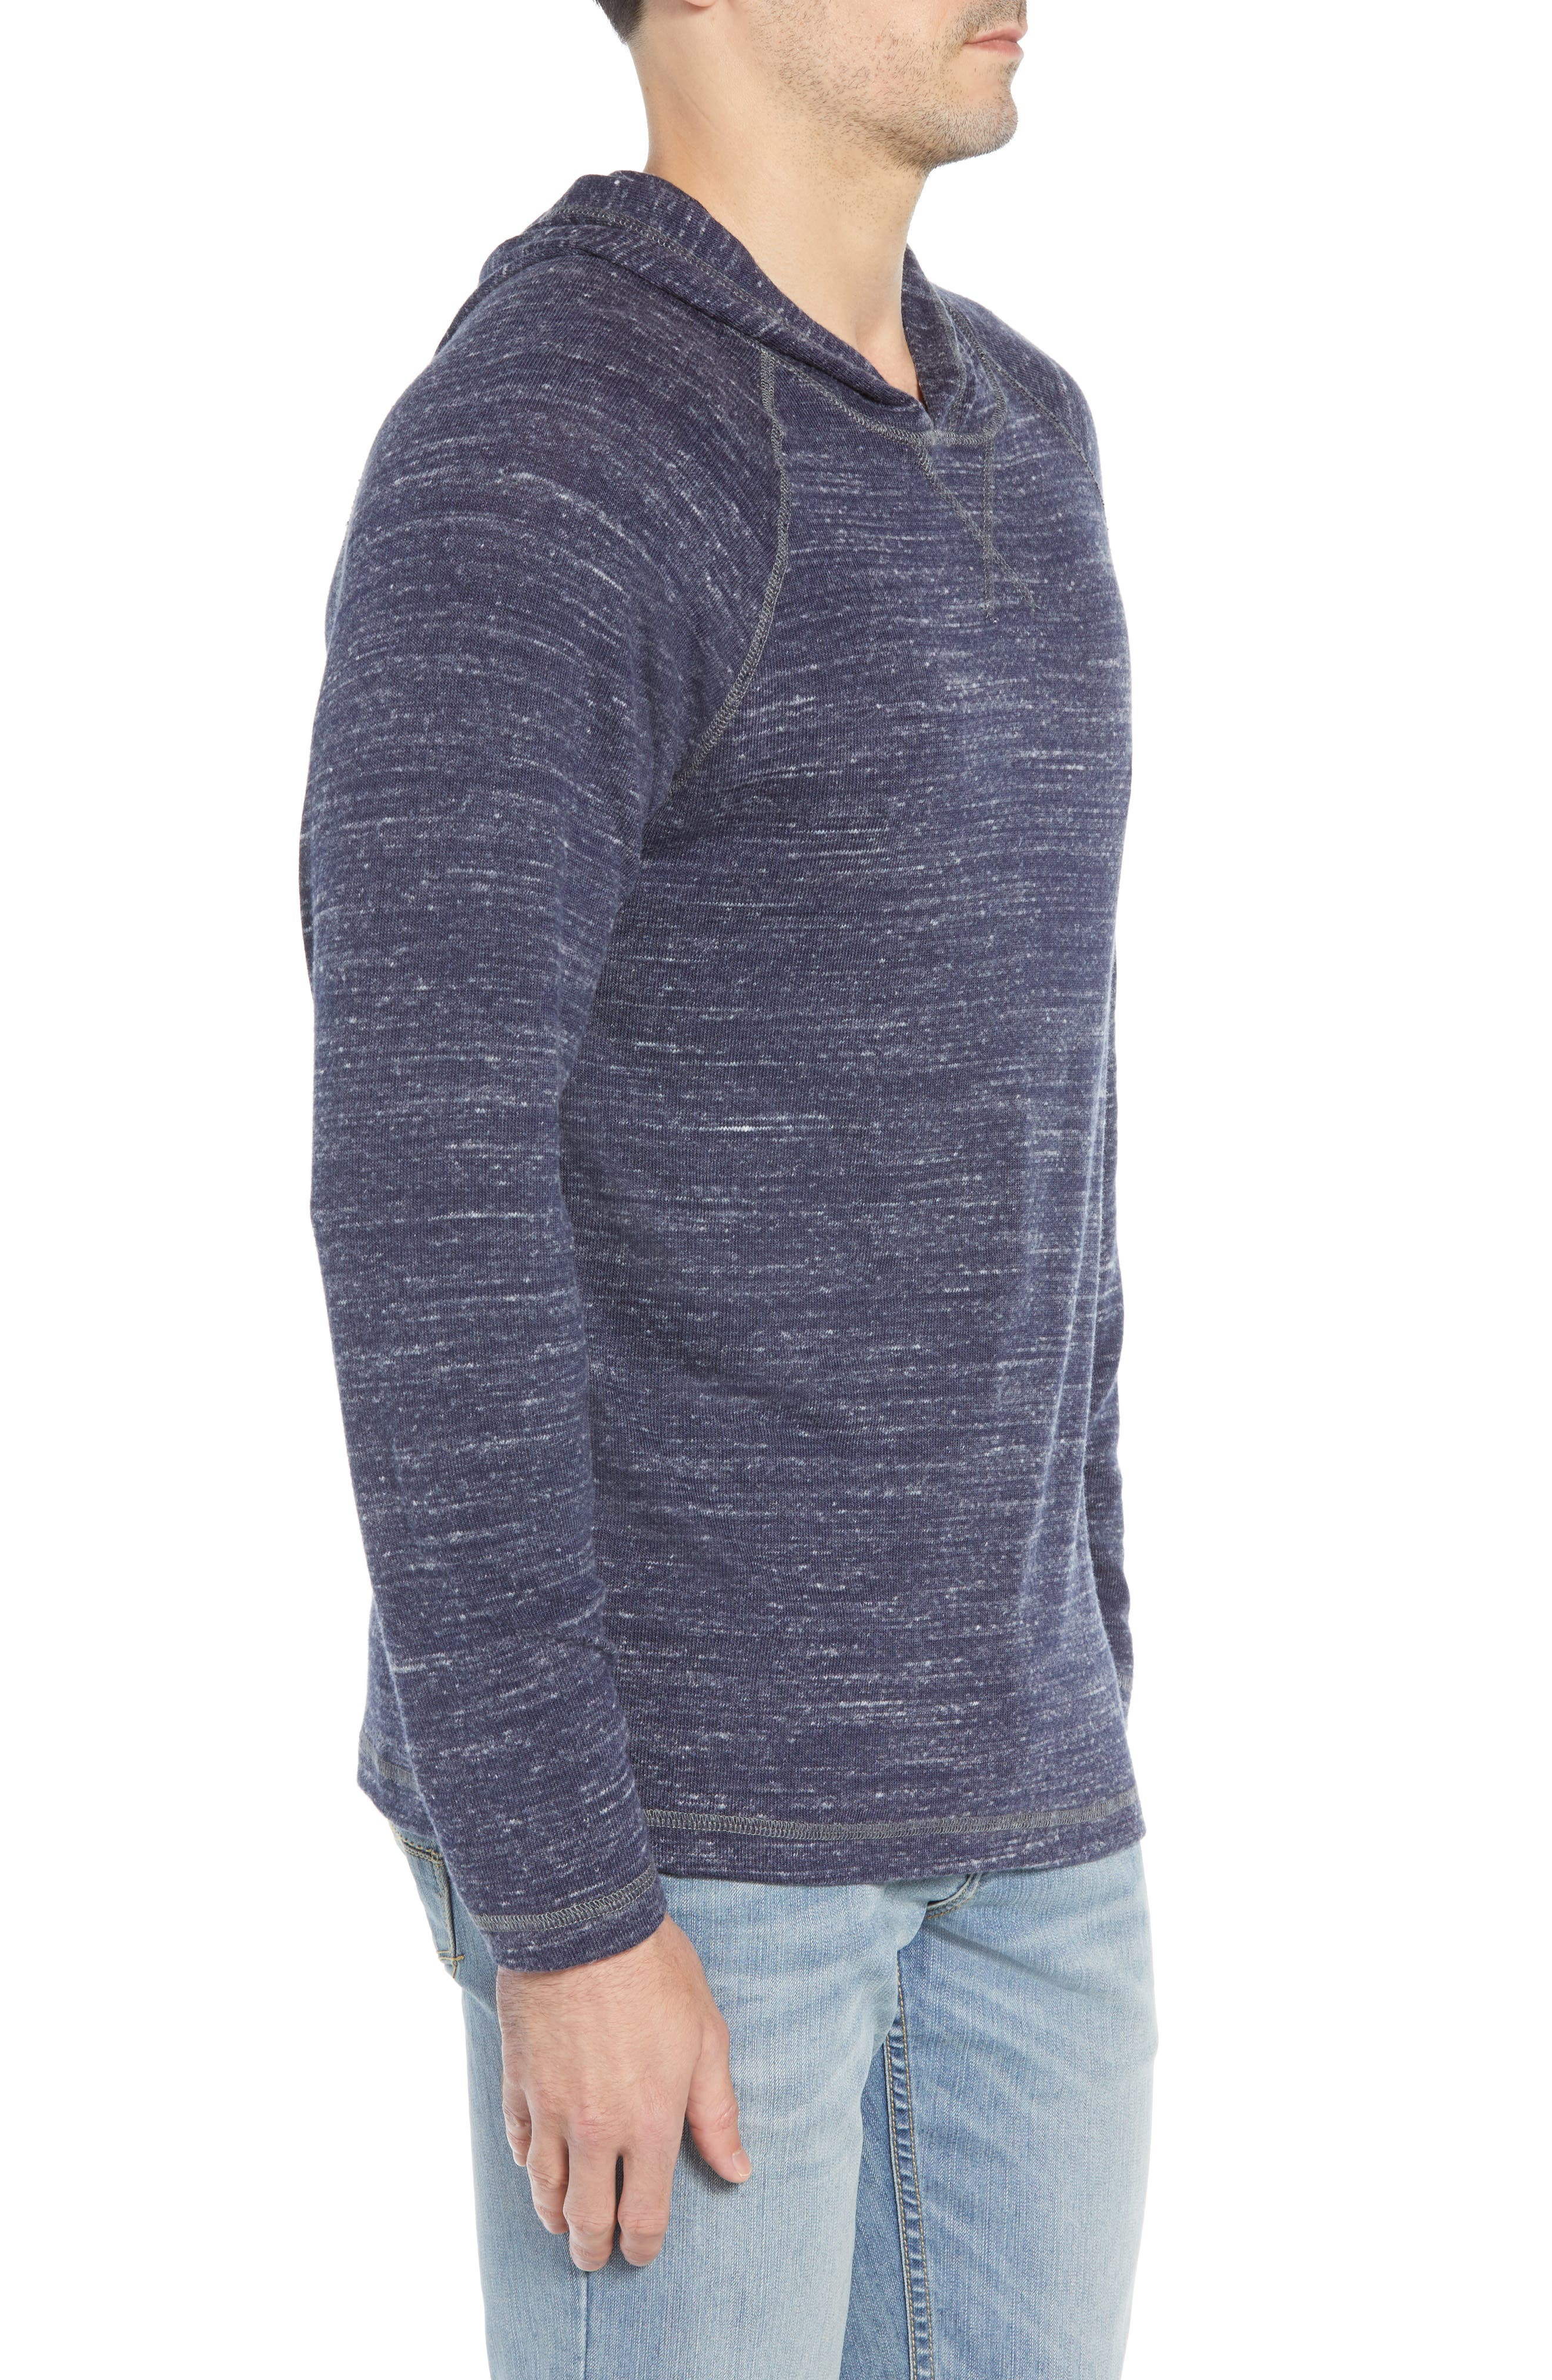 Leeward Cove Regular Fit Hoodie,                             Alternate thumbnail 3, color,                             OCEAN DEEP HEATHER